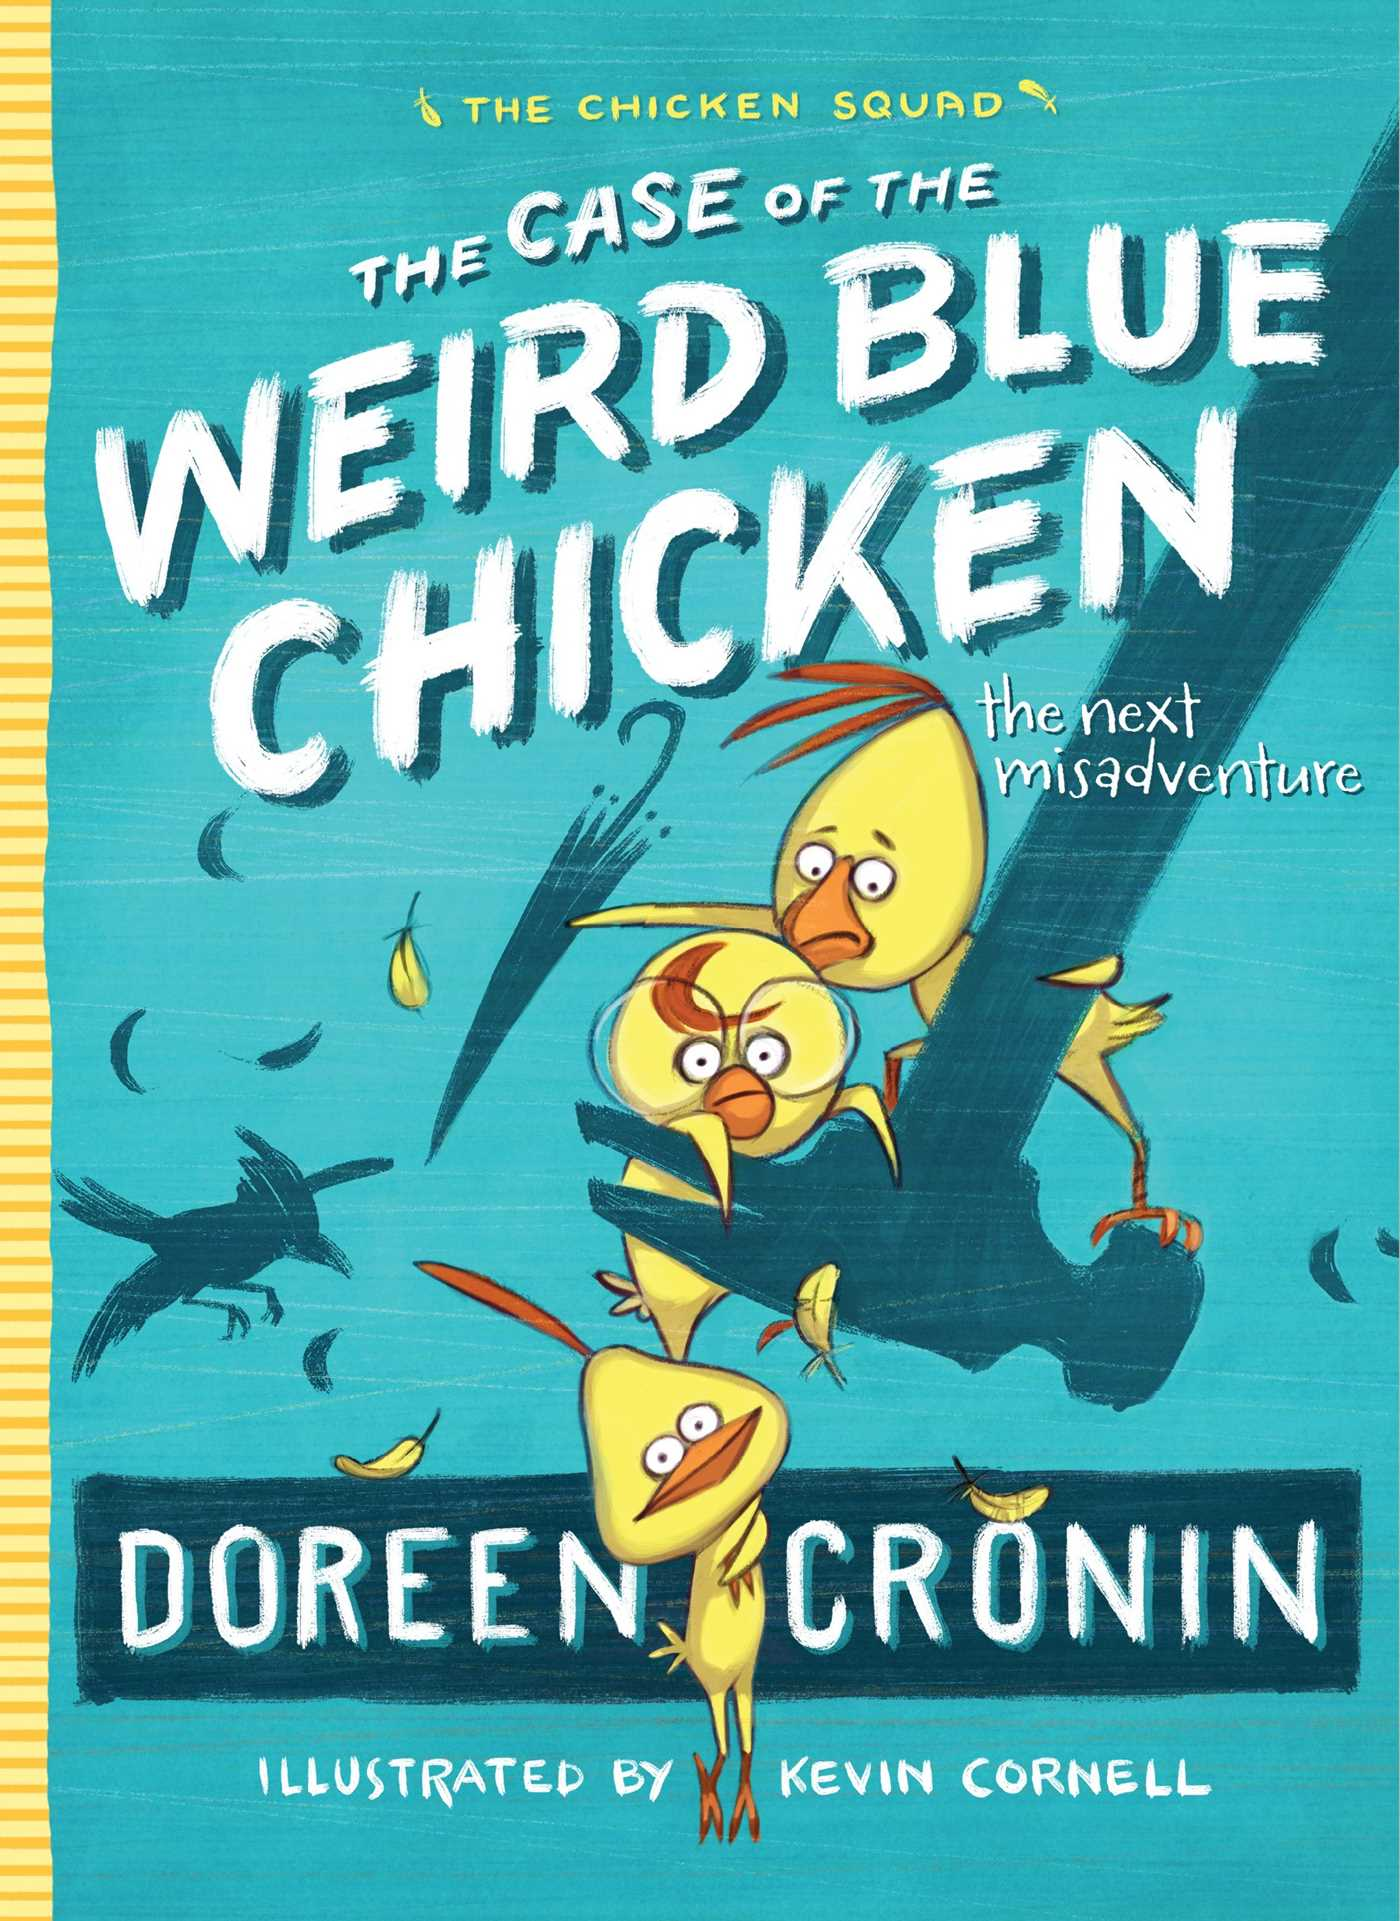 The-case-of-the-weird-blue-chicken-9781442496811_hr